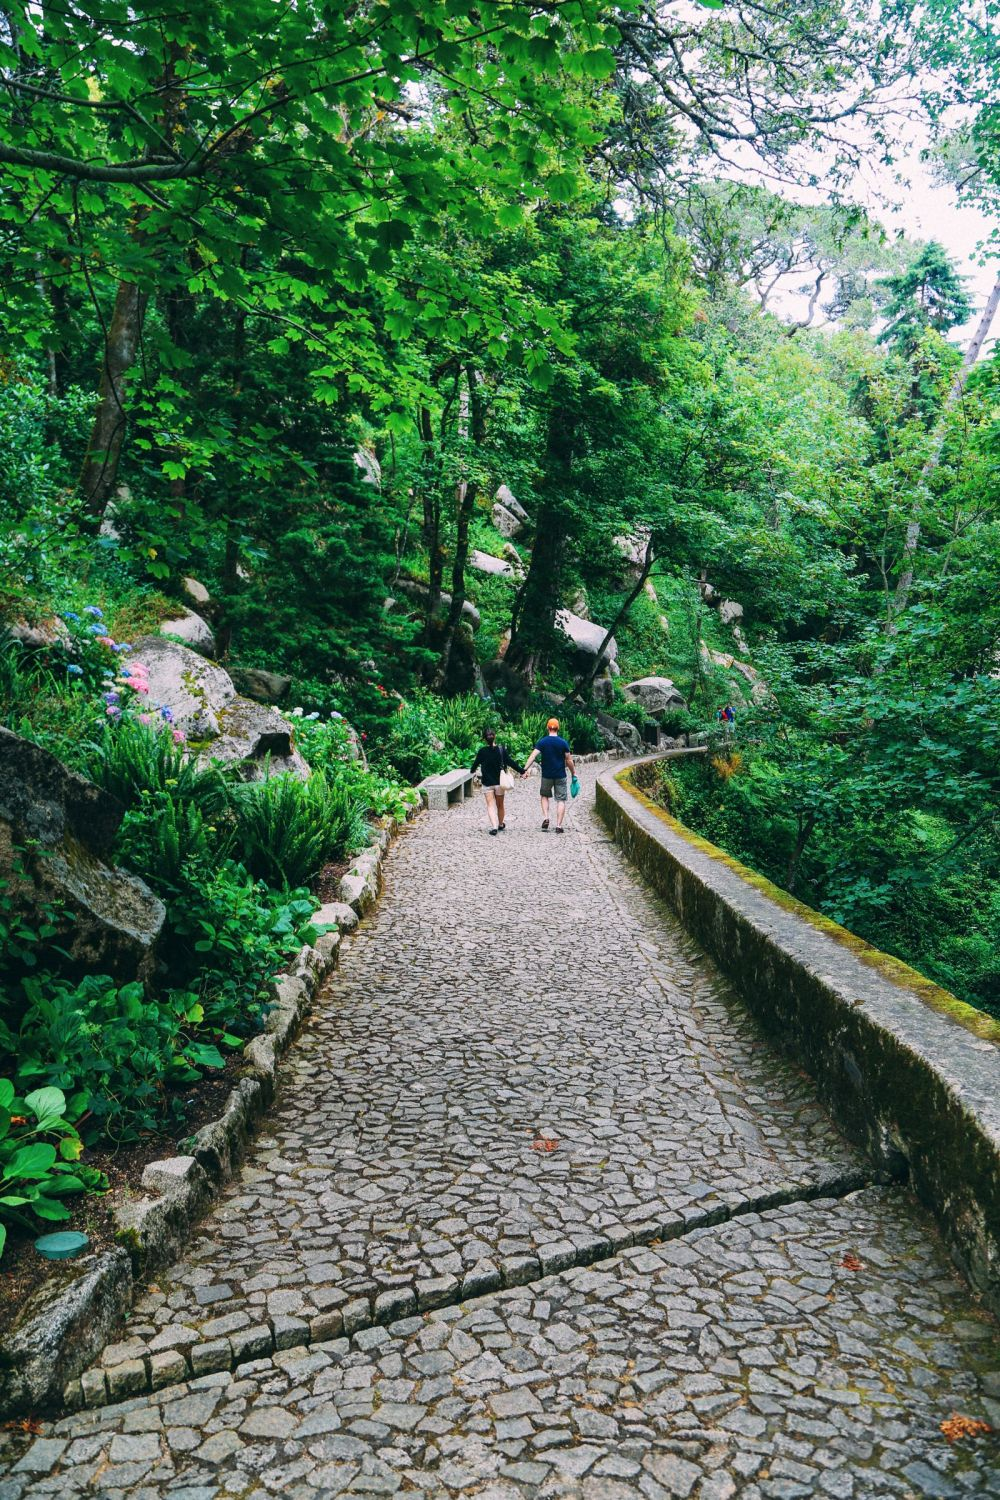 The Moorish Castle, Palace of Sintra And Pena Park – 3 Beautiful Places To See In Sintra, Portugal (1)